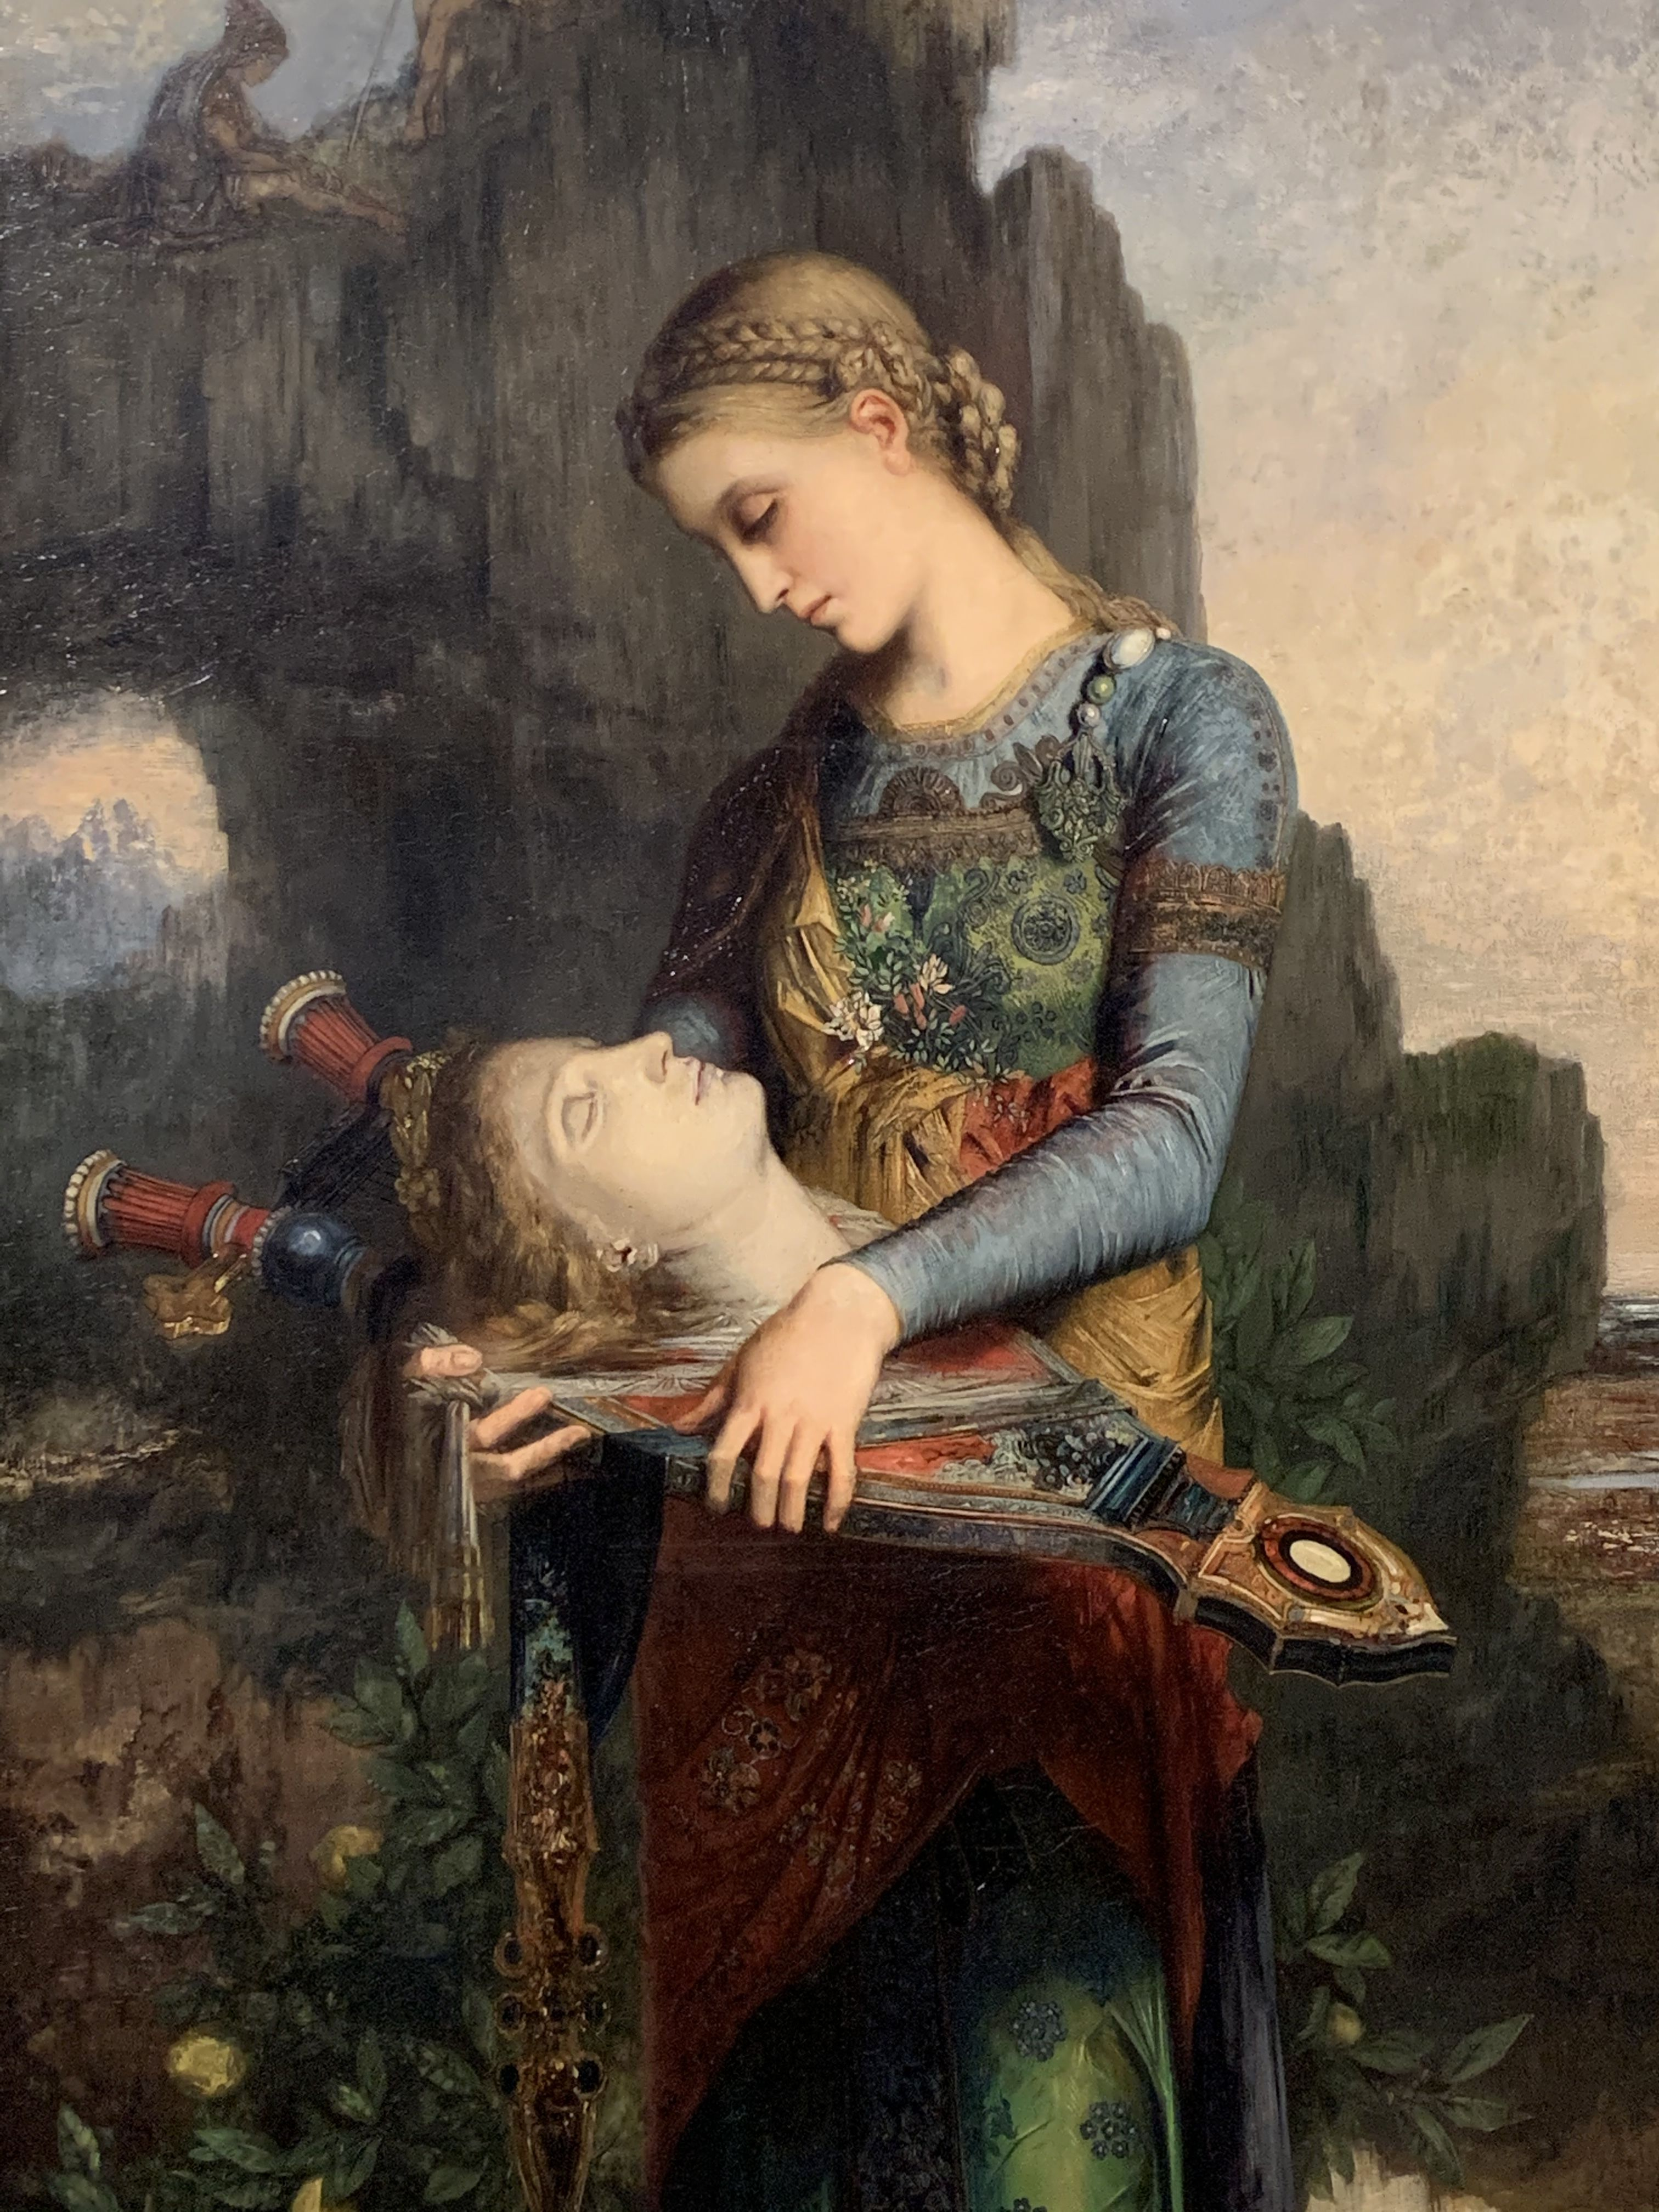 Symbolist painting by Gustave Moreau